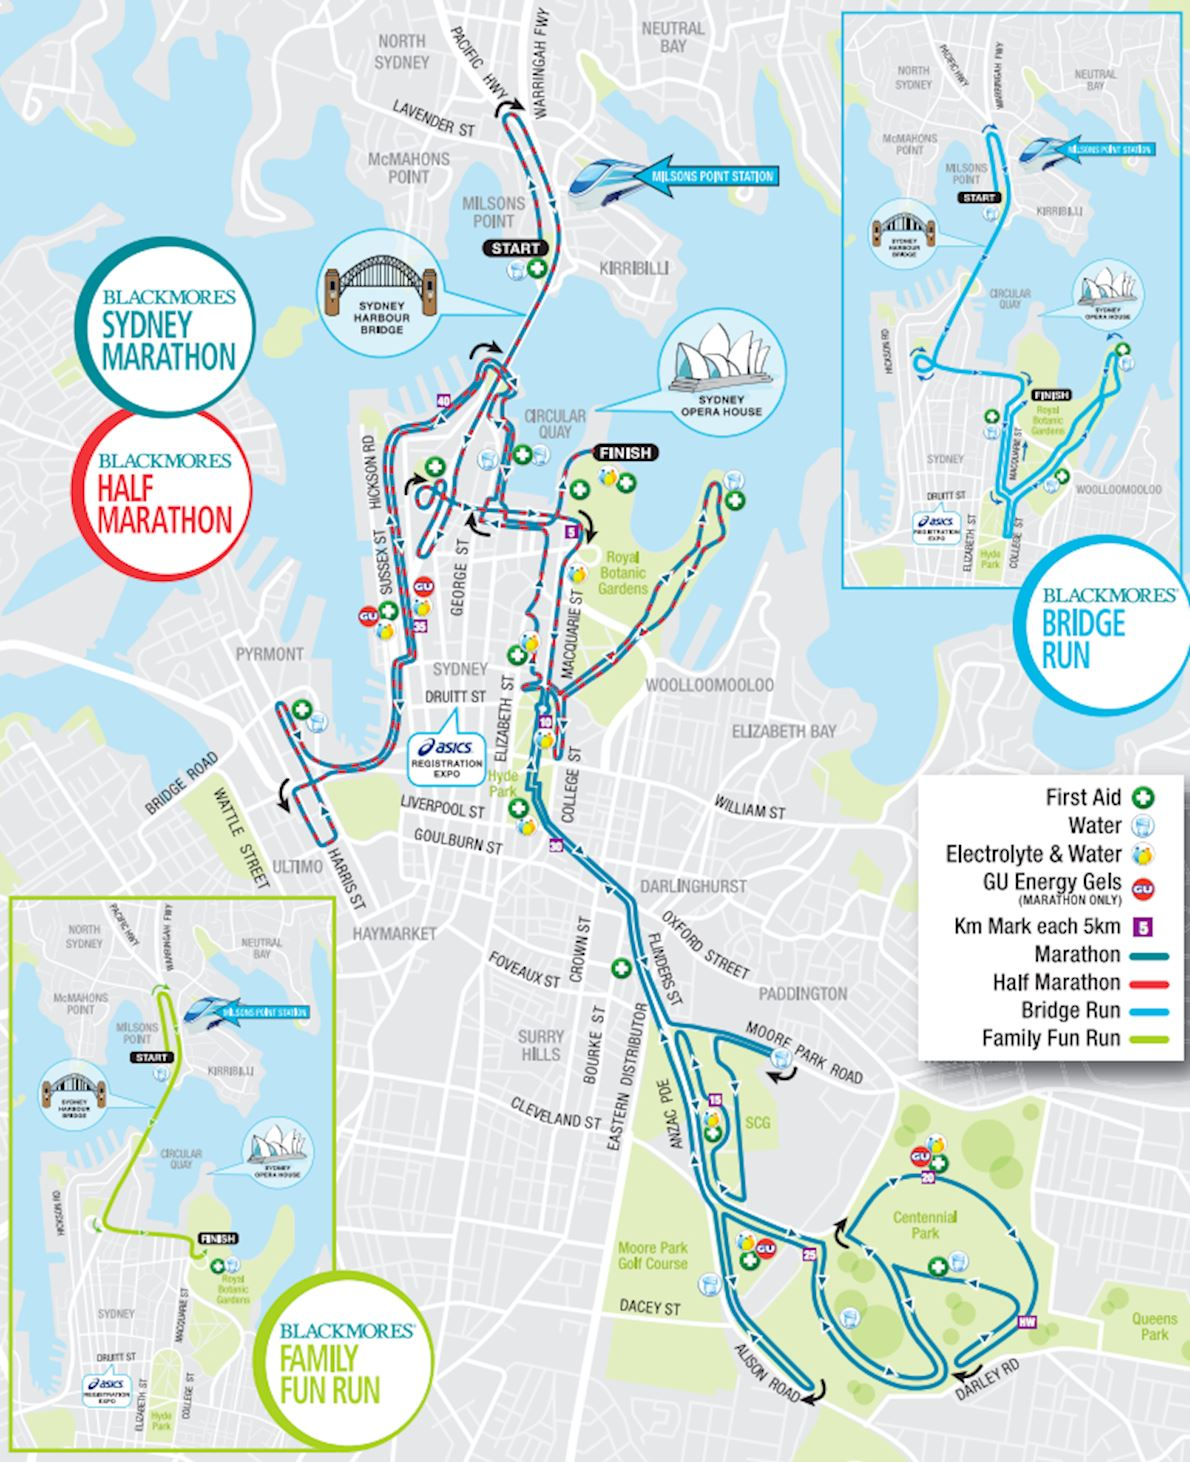 Blackmores Sydney Running Festival Route Map